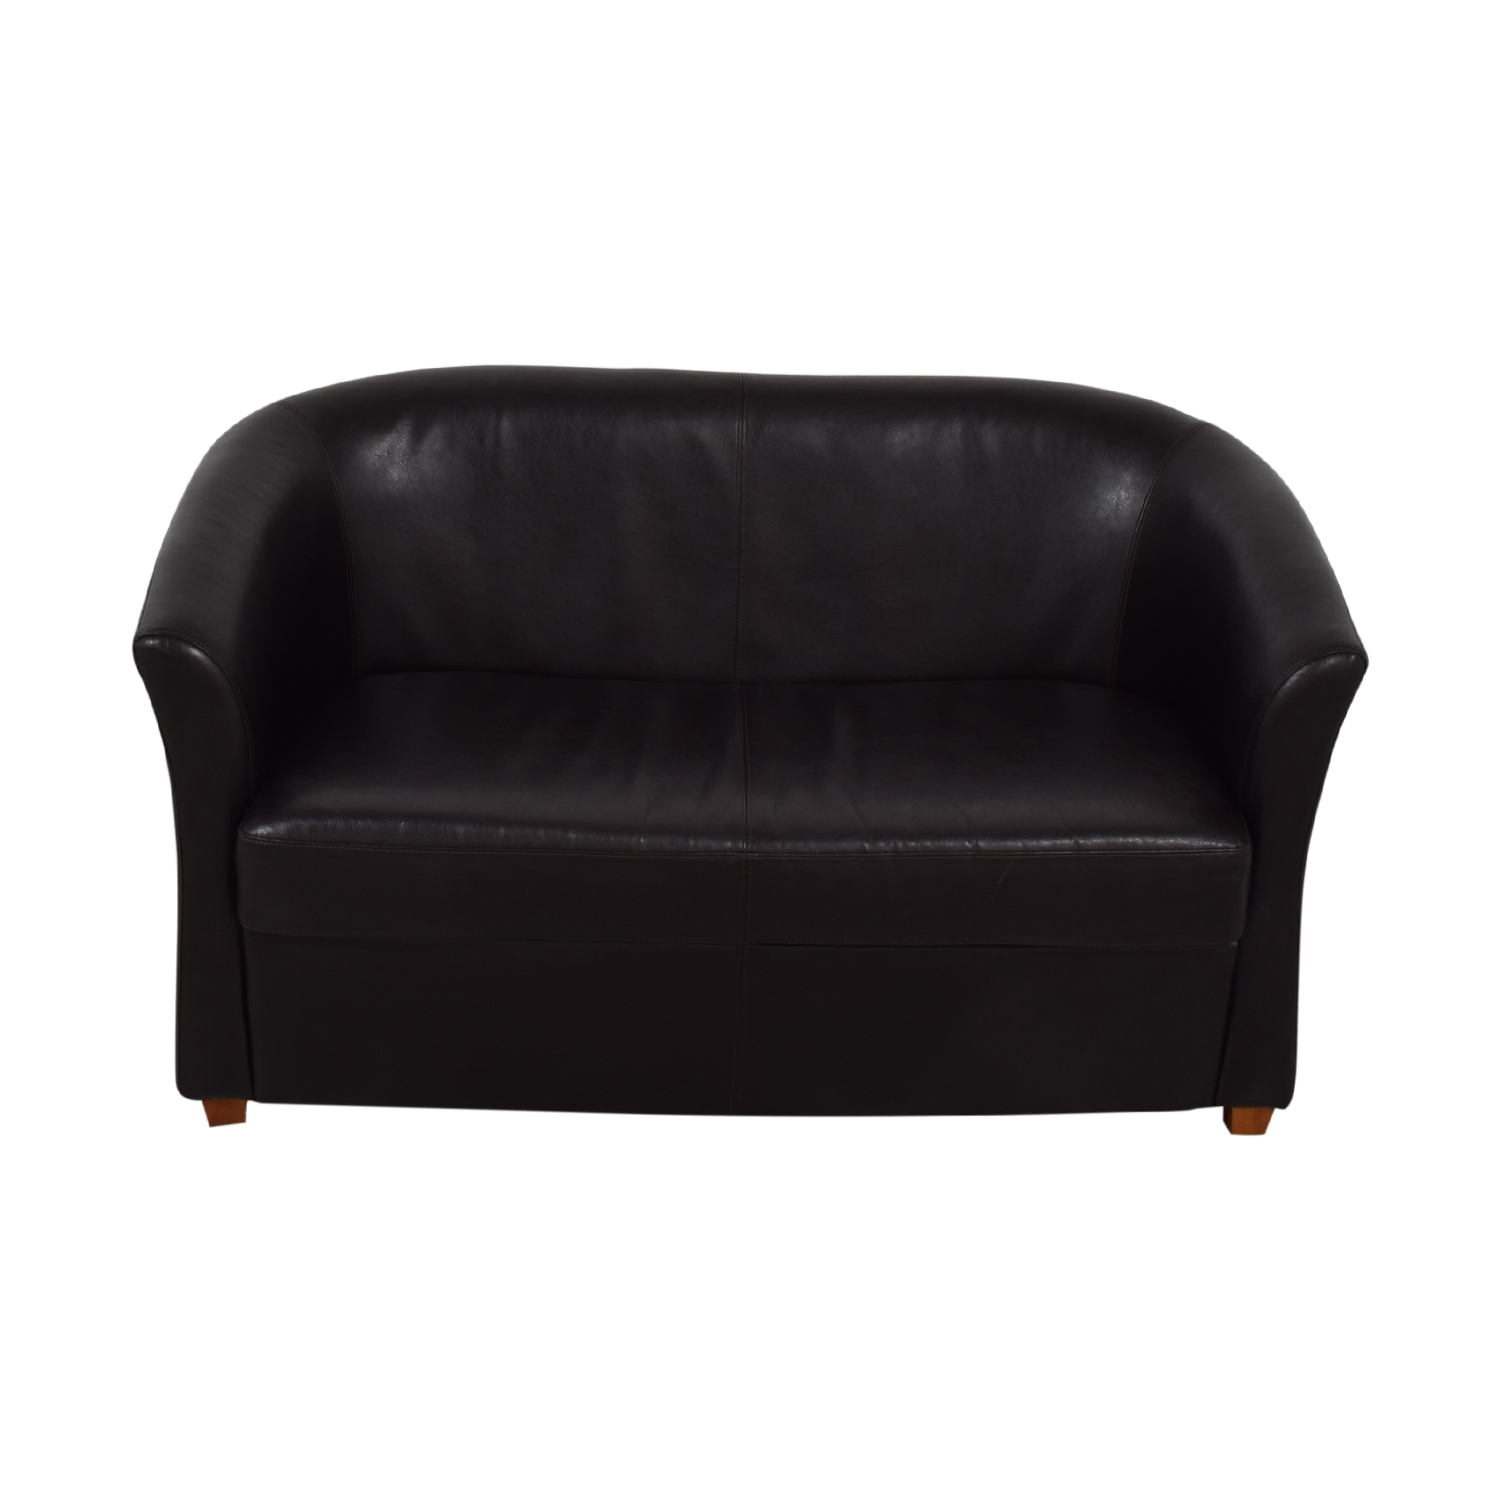 Pier 1 Pier 1 Isaac Collection Loveseat nyc